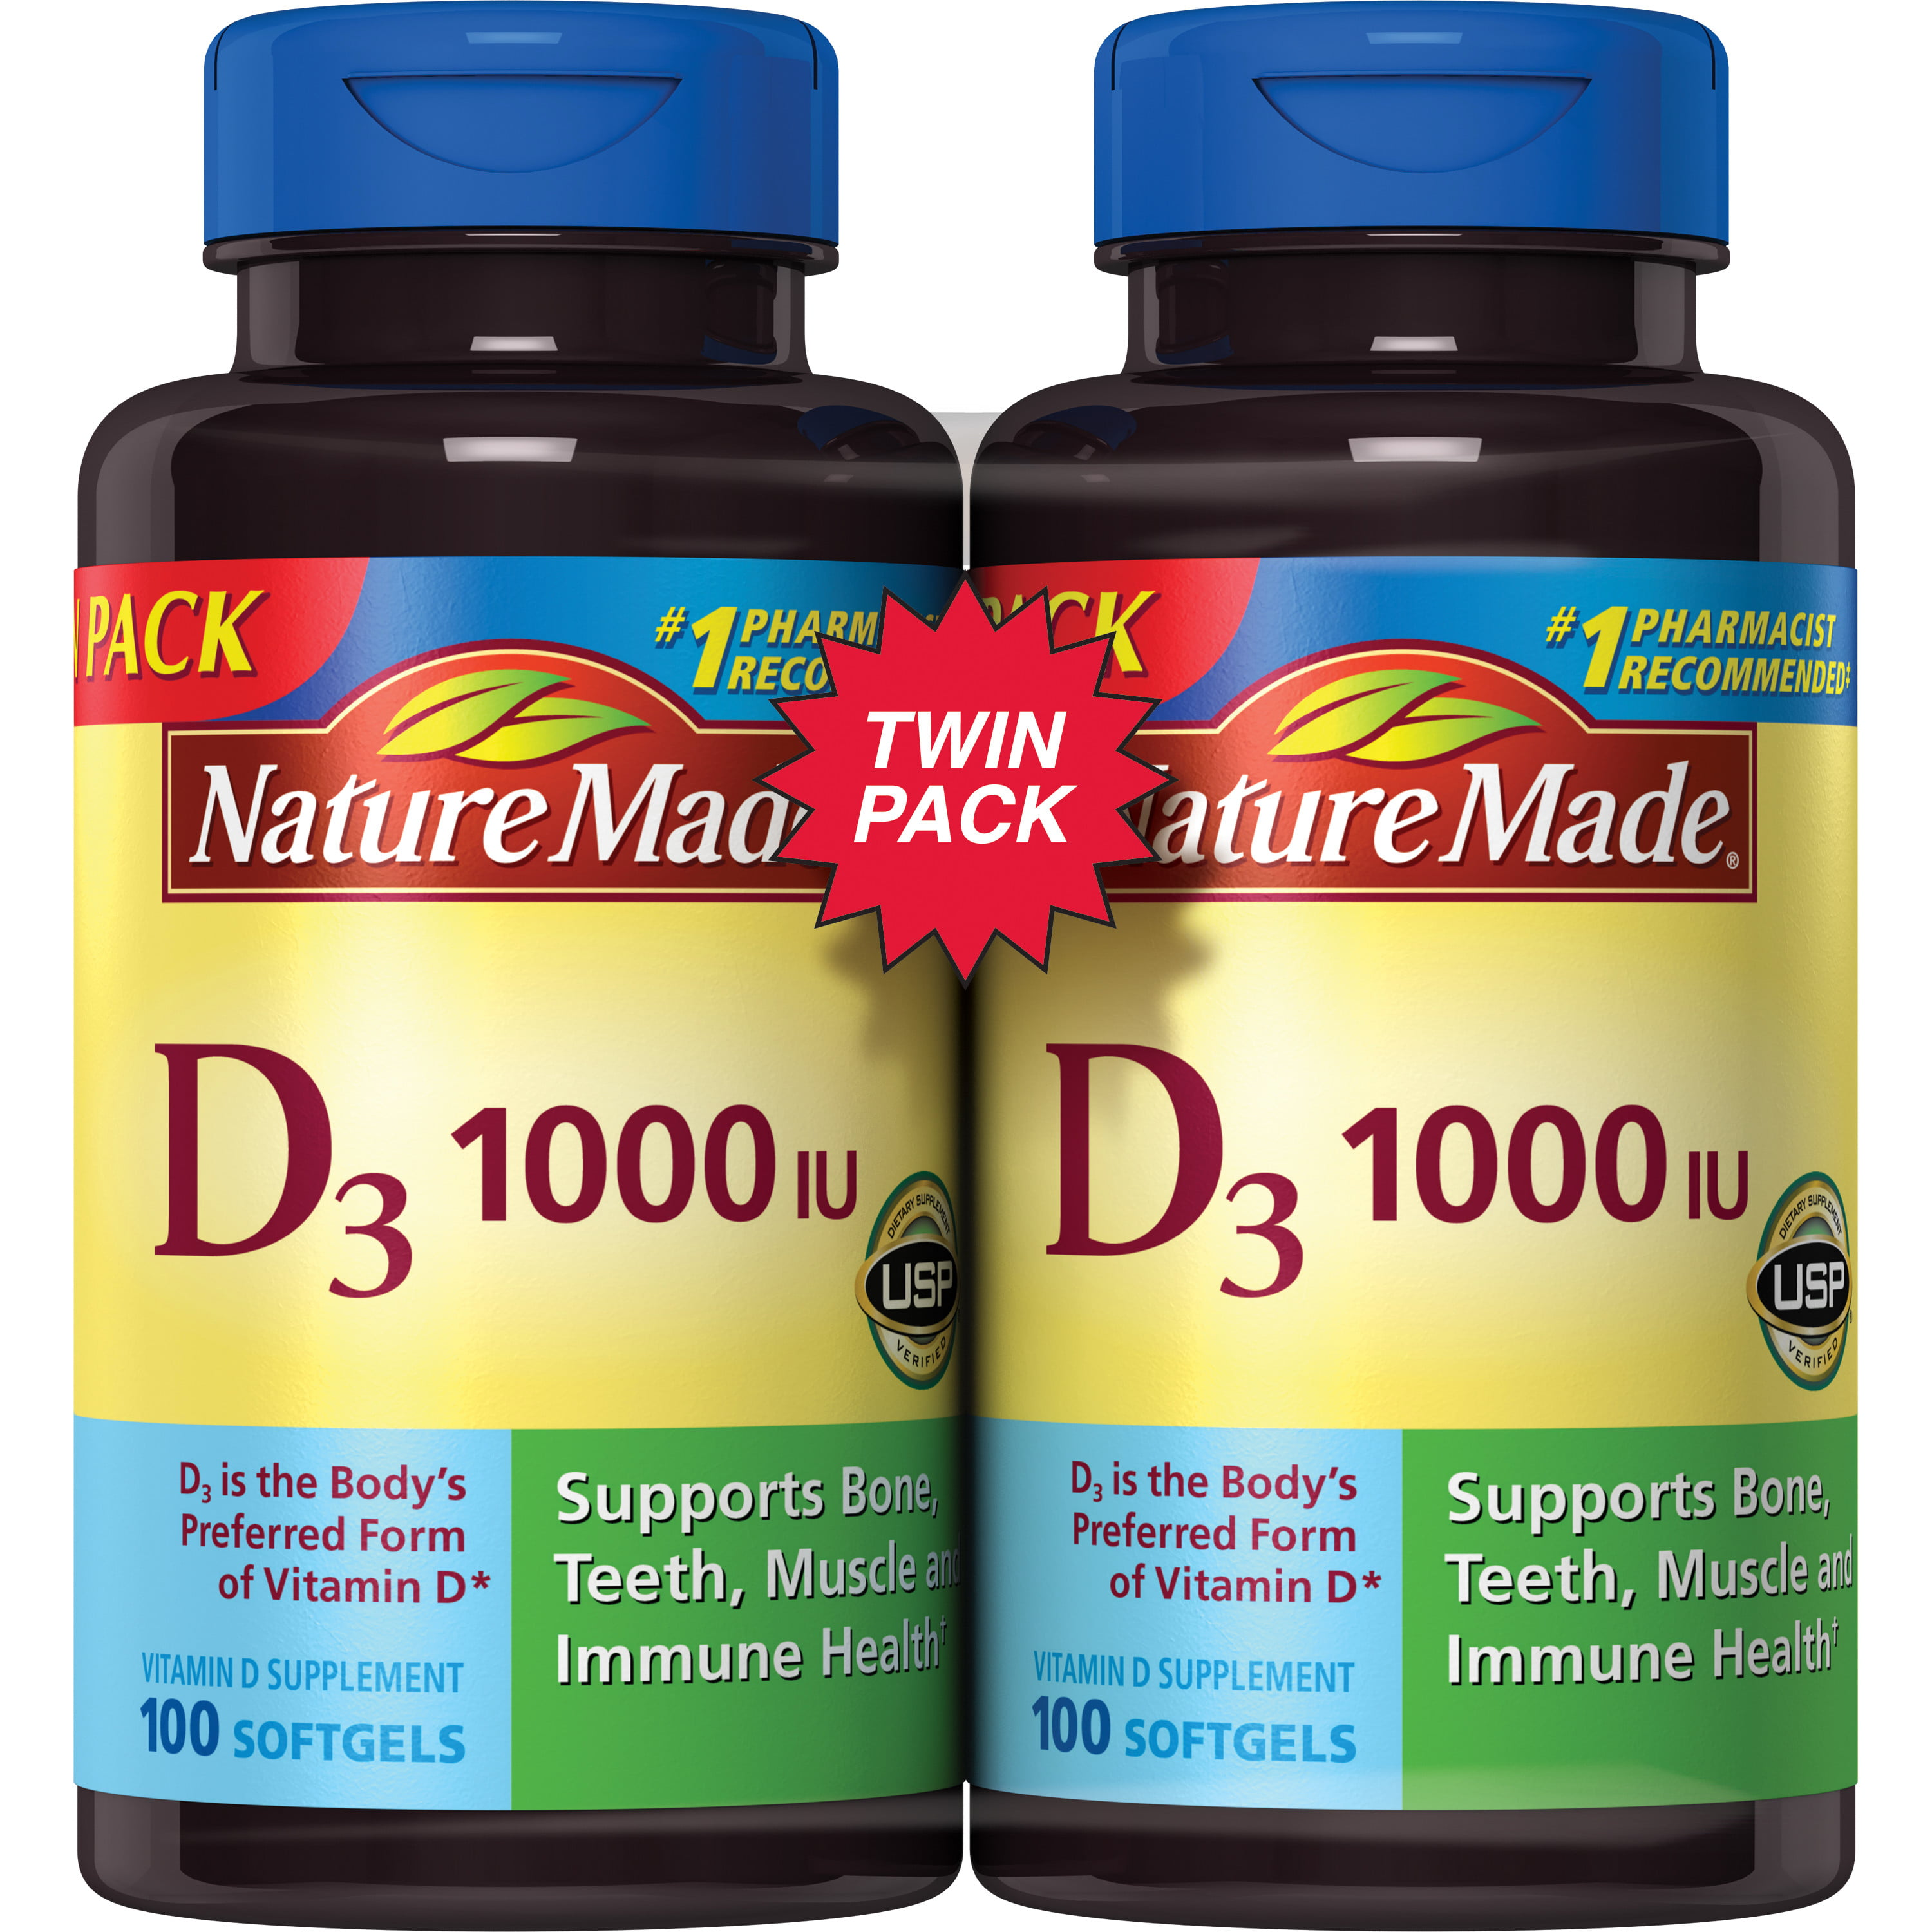 vitamin nature 1000 iu mcg pack d3 softgels count twin tablets walmart health supplements 2x100 bone joint sealed ct displays